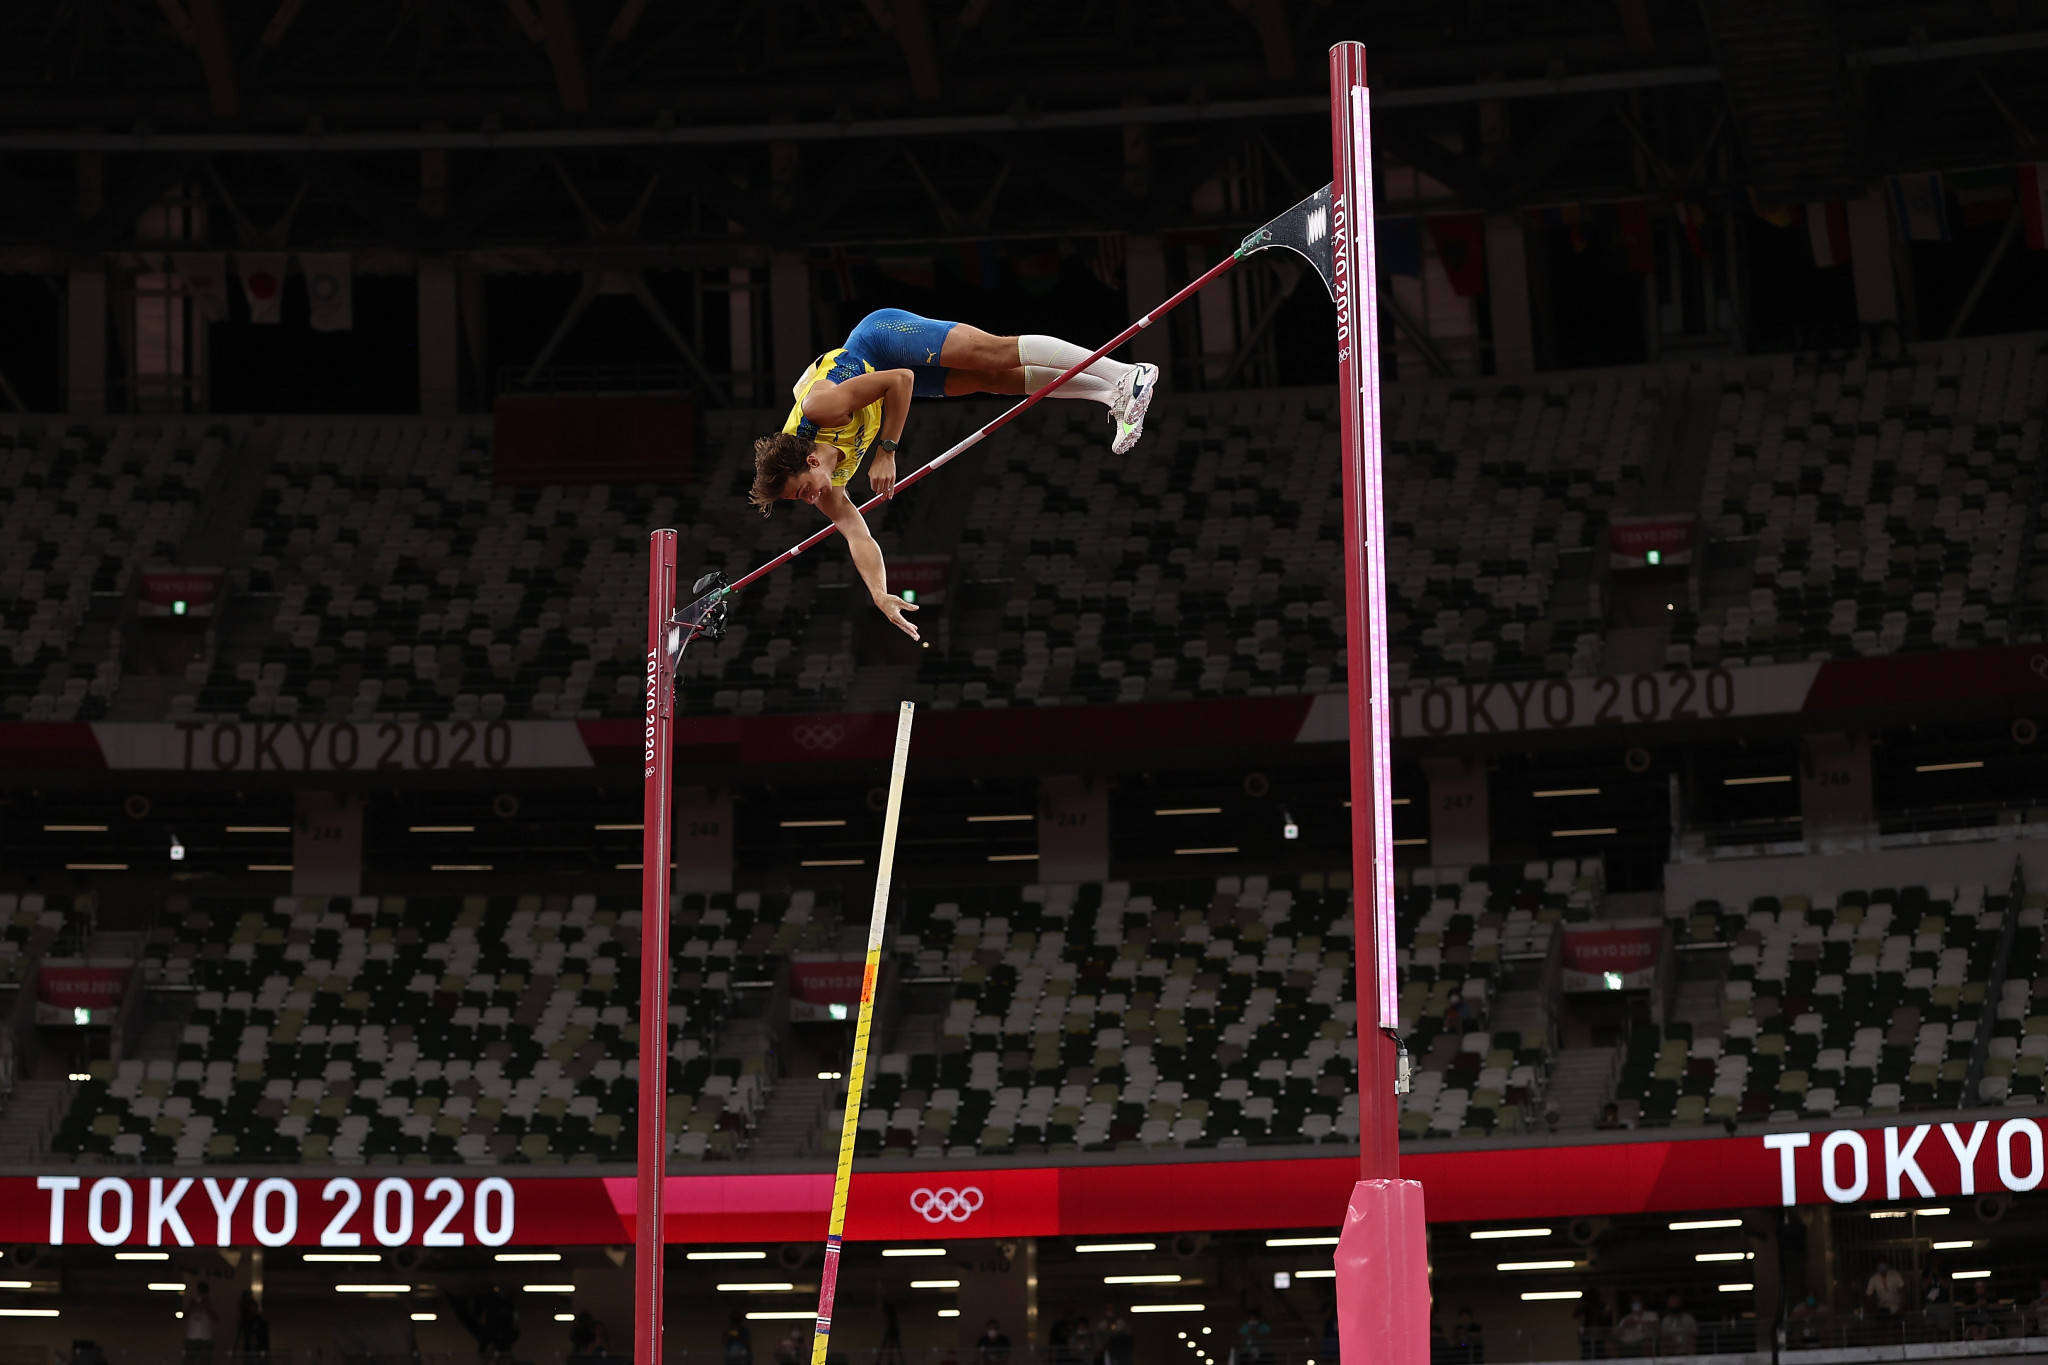 Armand Duplantis won an expected gold medal in the men's pole vault, but the Swede came short of breaking his own world record ©Getty Images